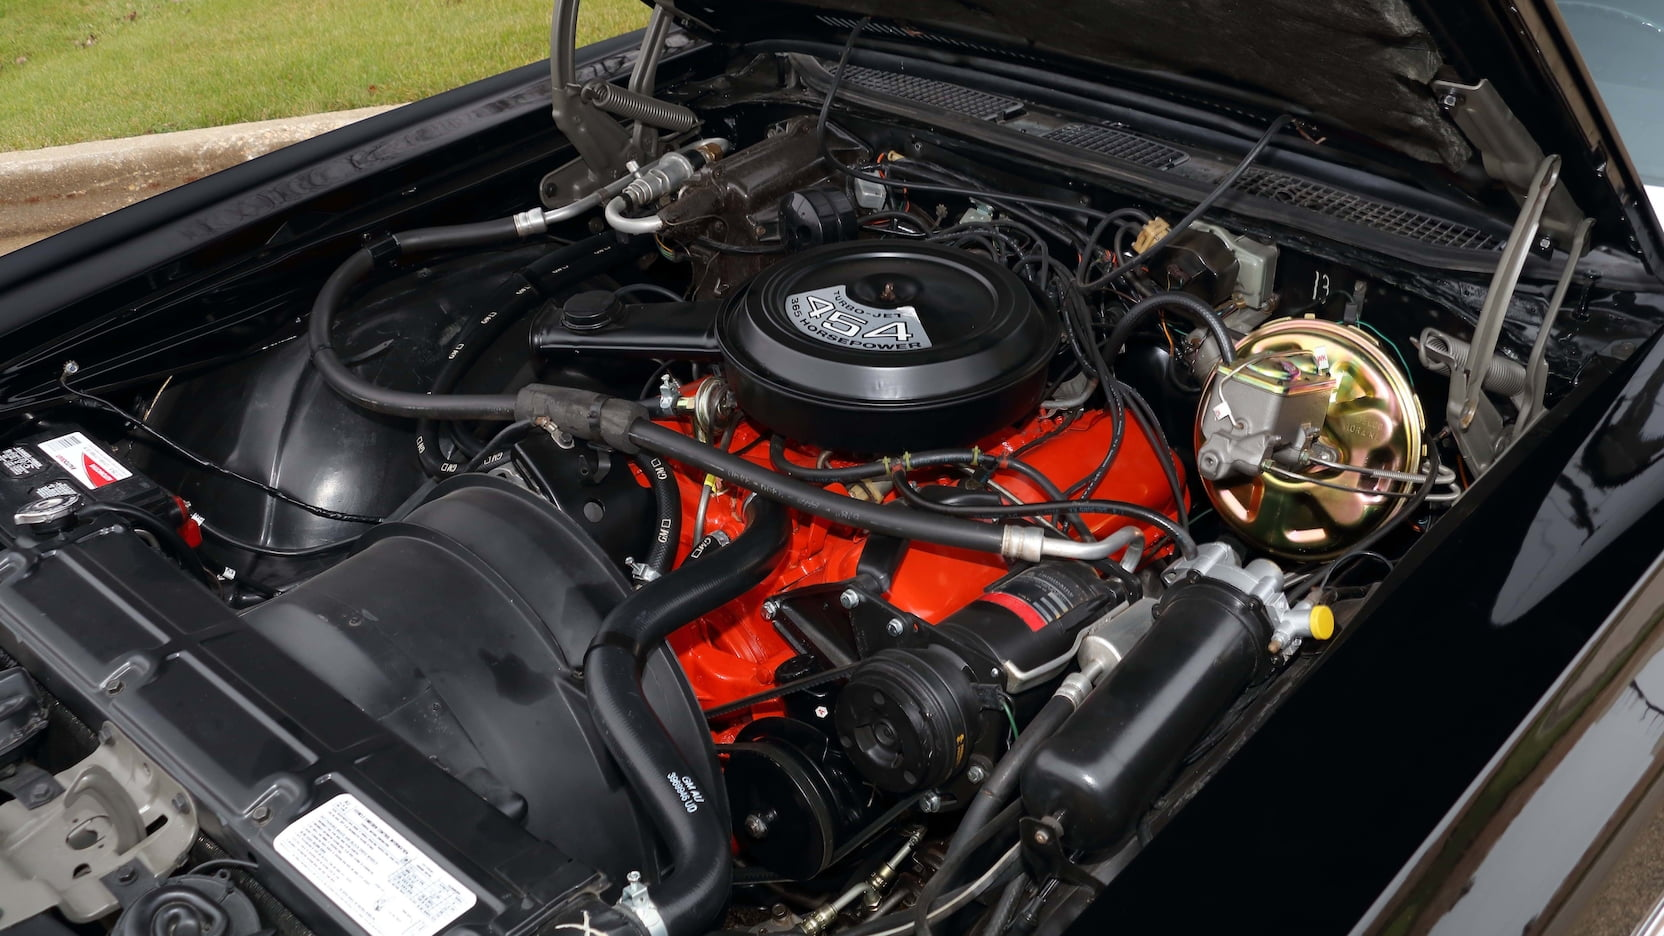 1971 Chevrolet Monte Carlo SS engine